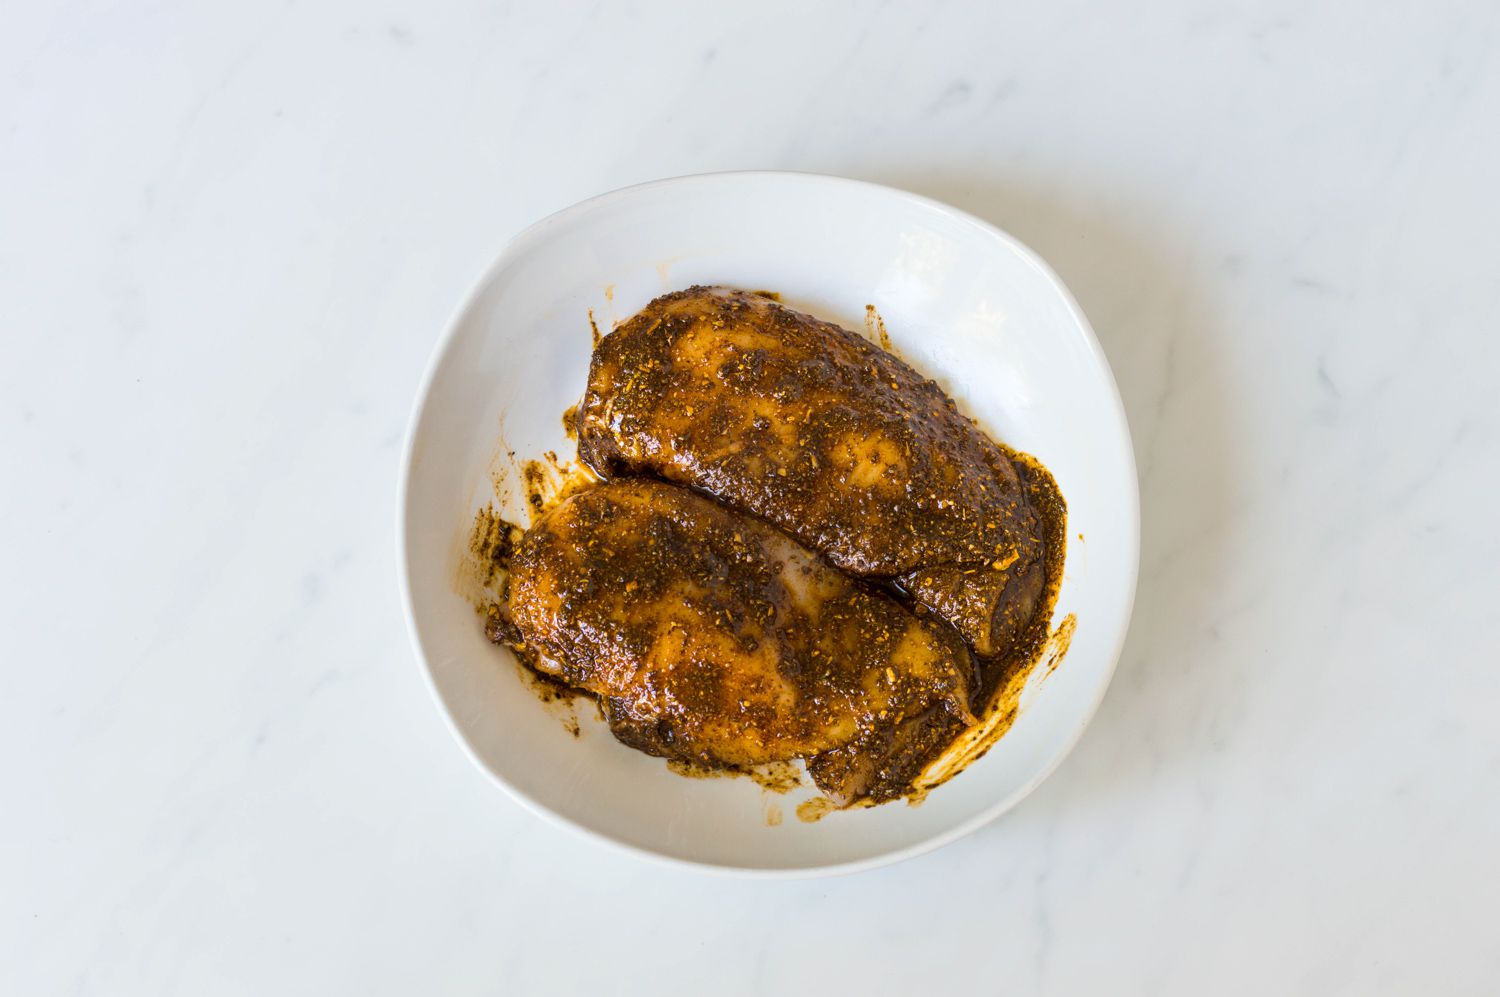 Chicken breasts and cajun spices